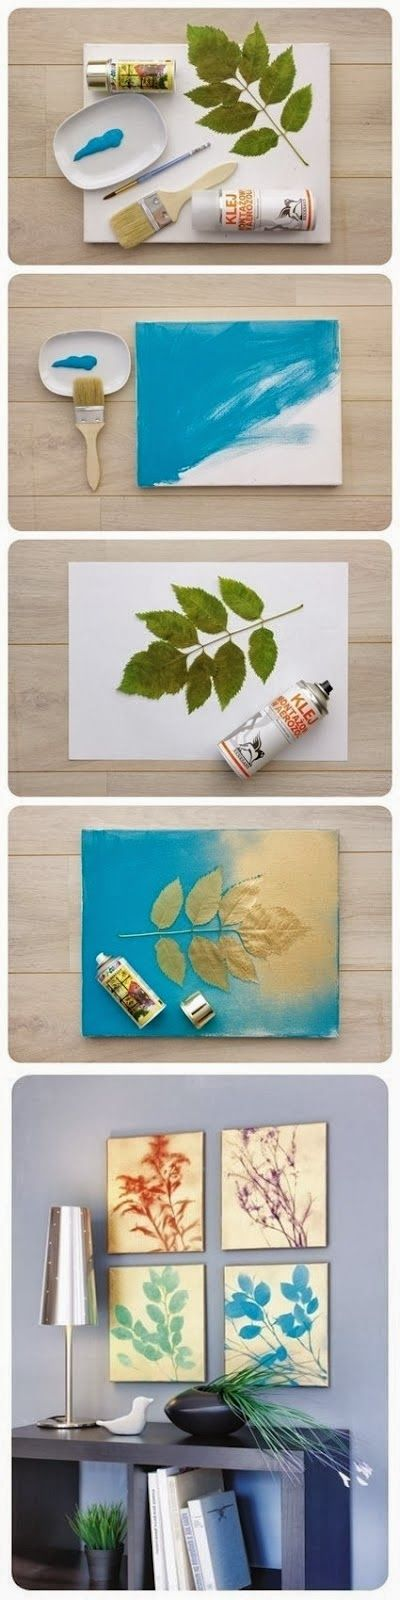 DIY SUPER IDEAS: Make a Nature Wall Art on Canvas